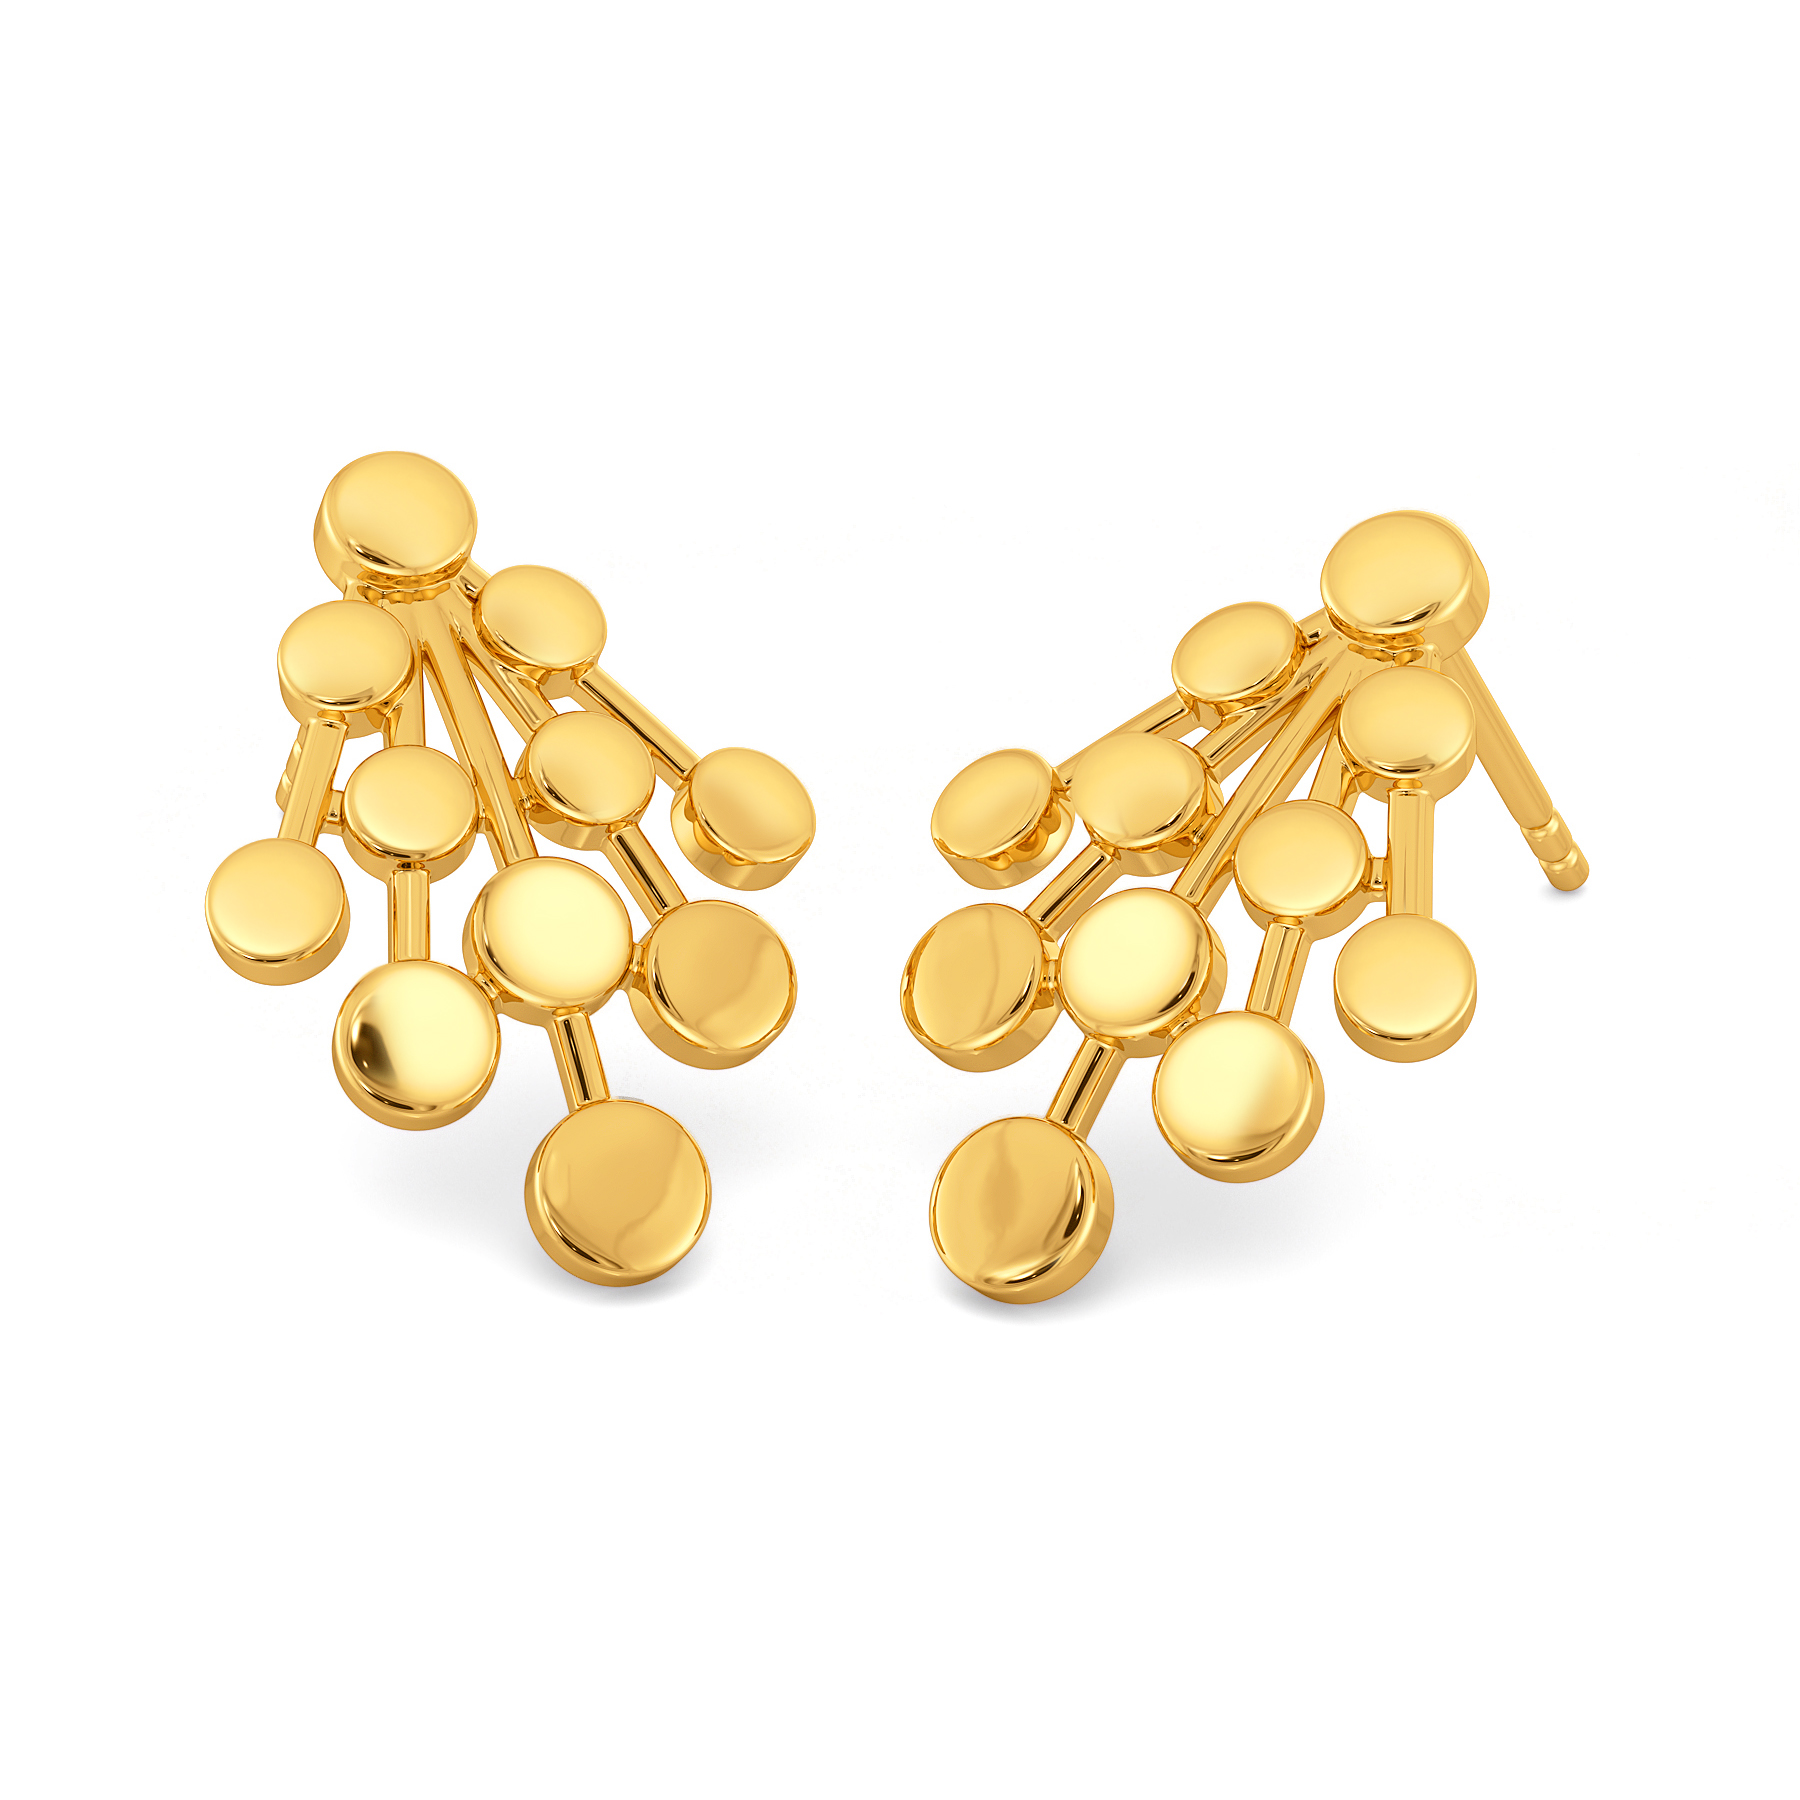 Allure of Gold Gold Earrings